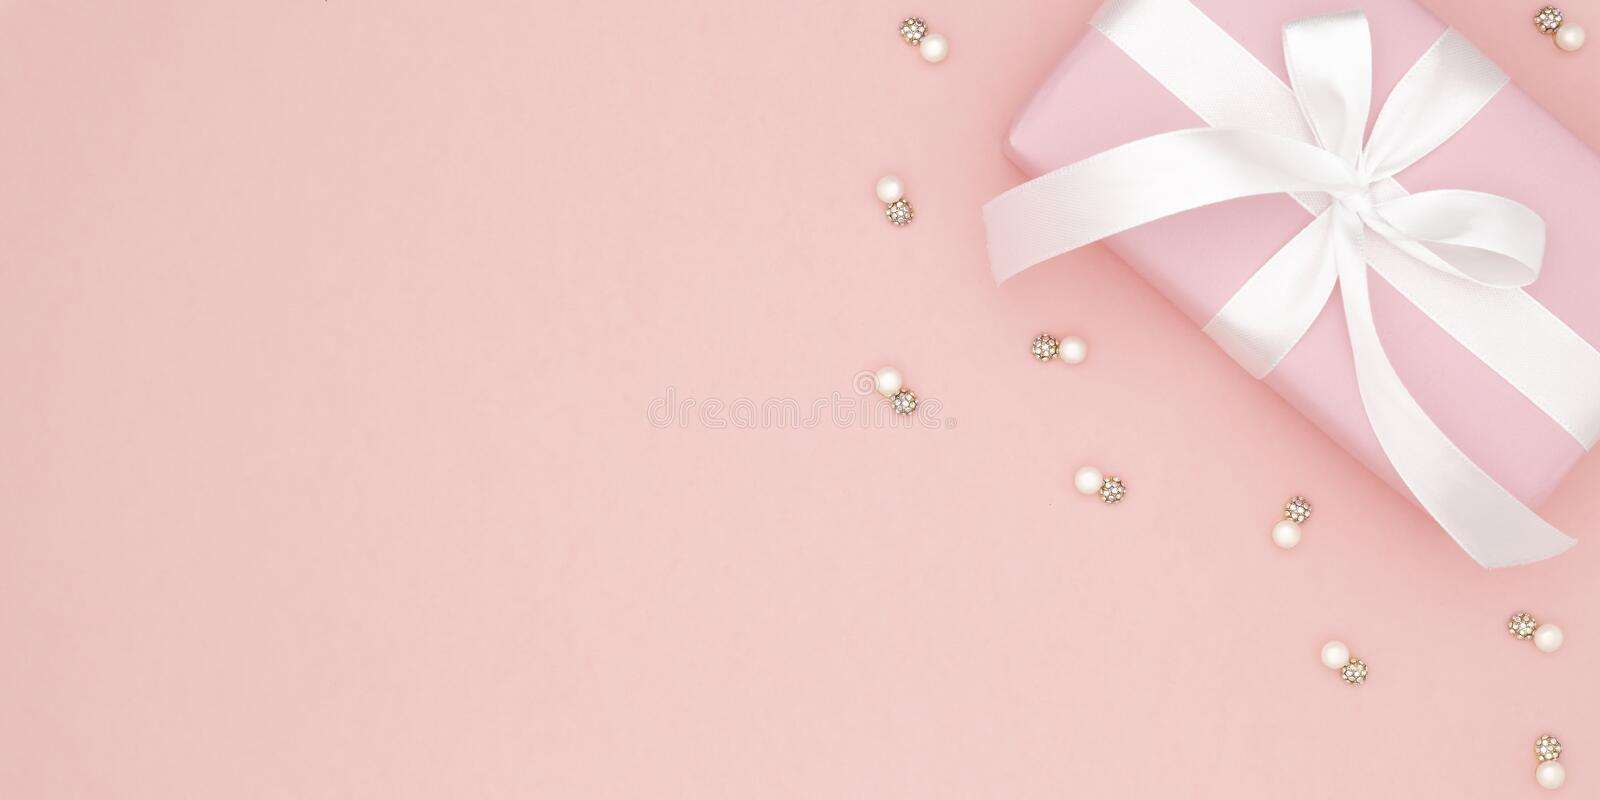 Valentine or women day pink gift with white bow ribbon on coral paper background. Concept decor love day or birthday. Flat lay. royalty free stock image